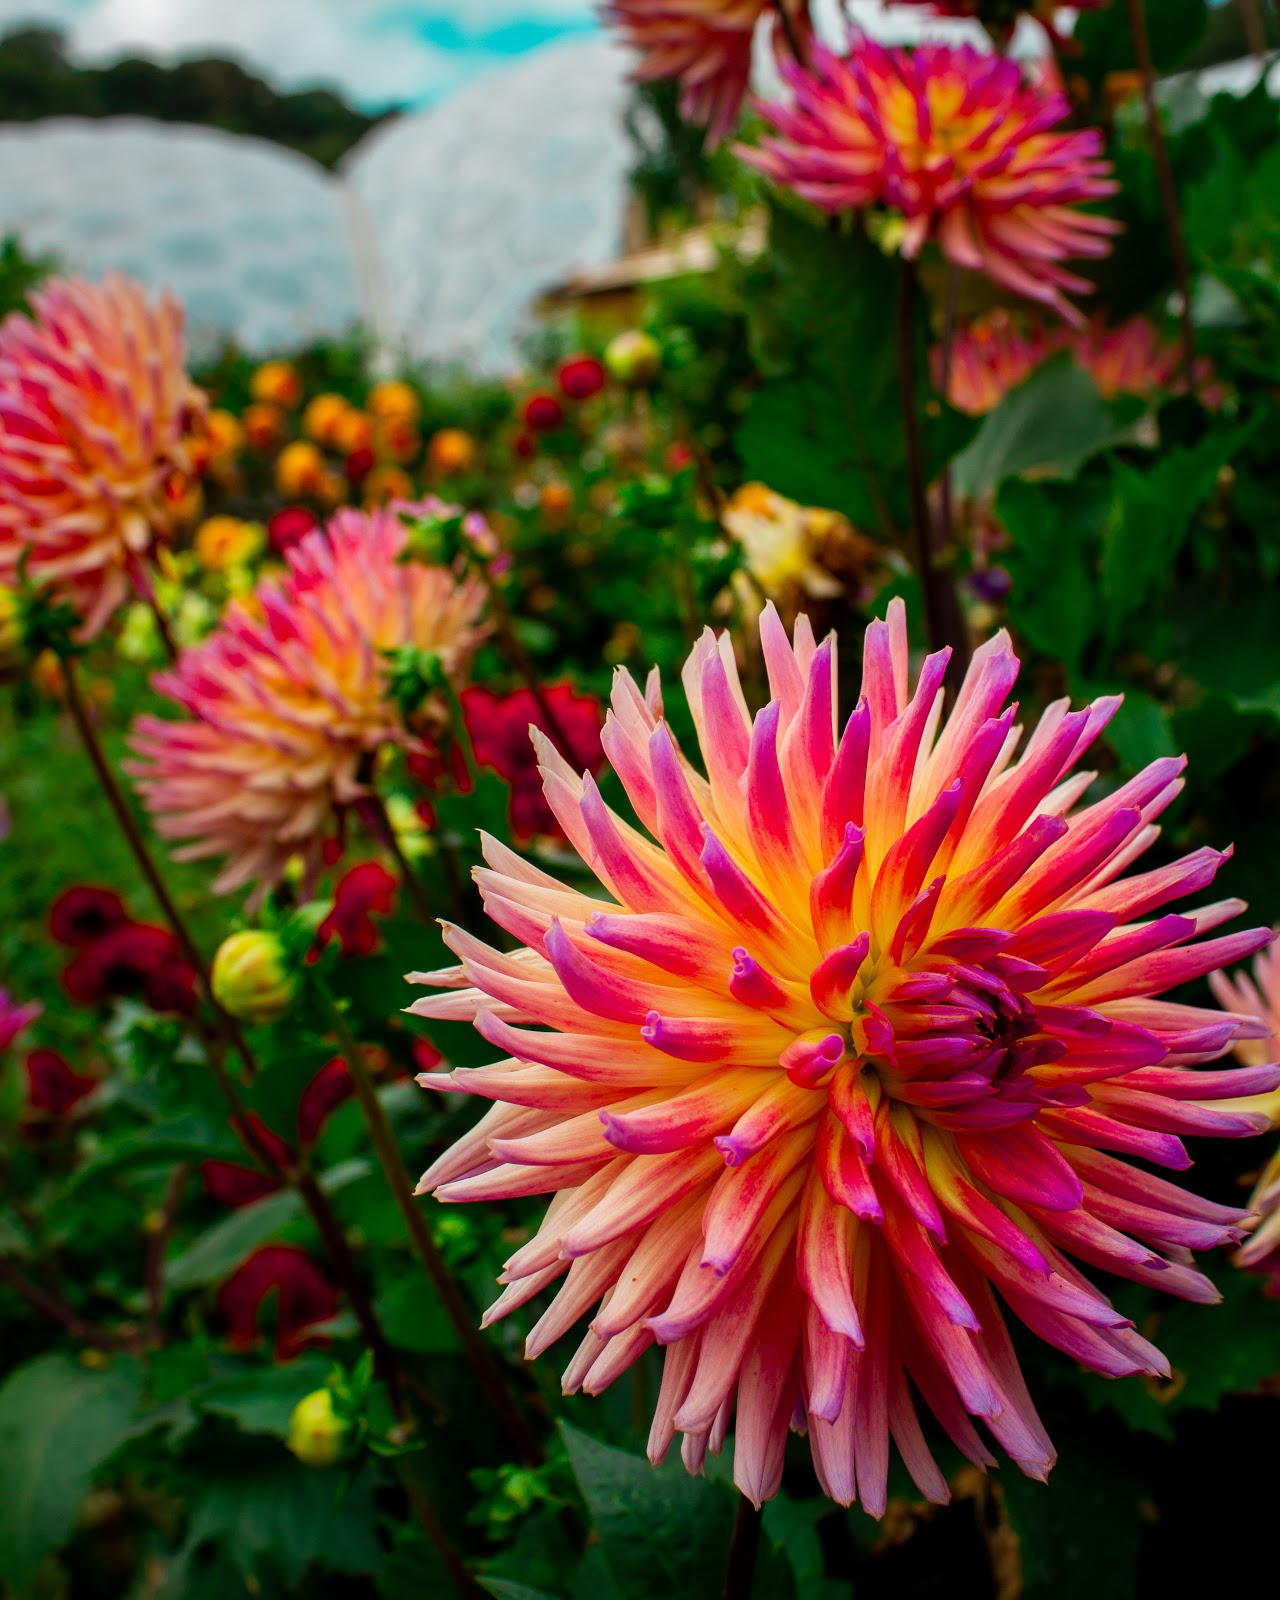 chrysanths-flowers, flower wallpaper images